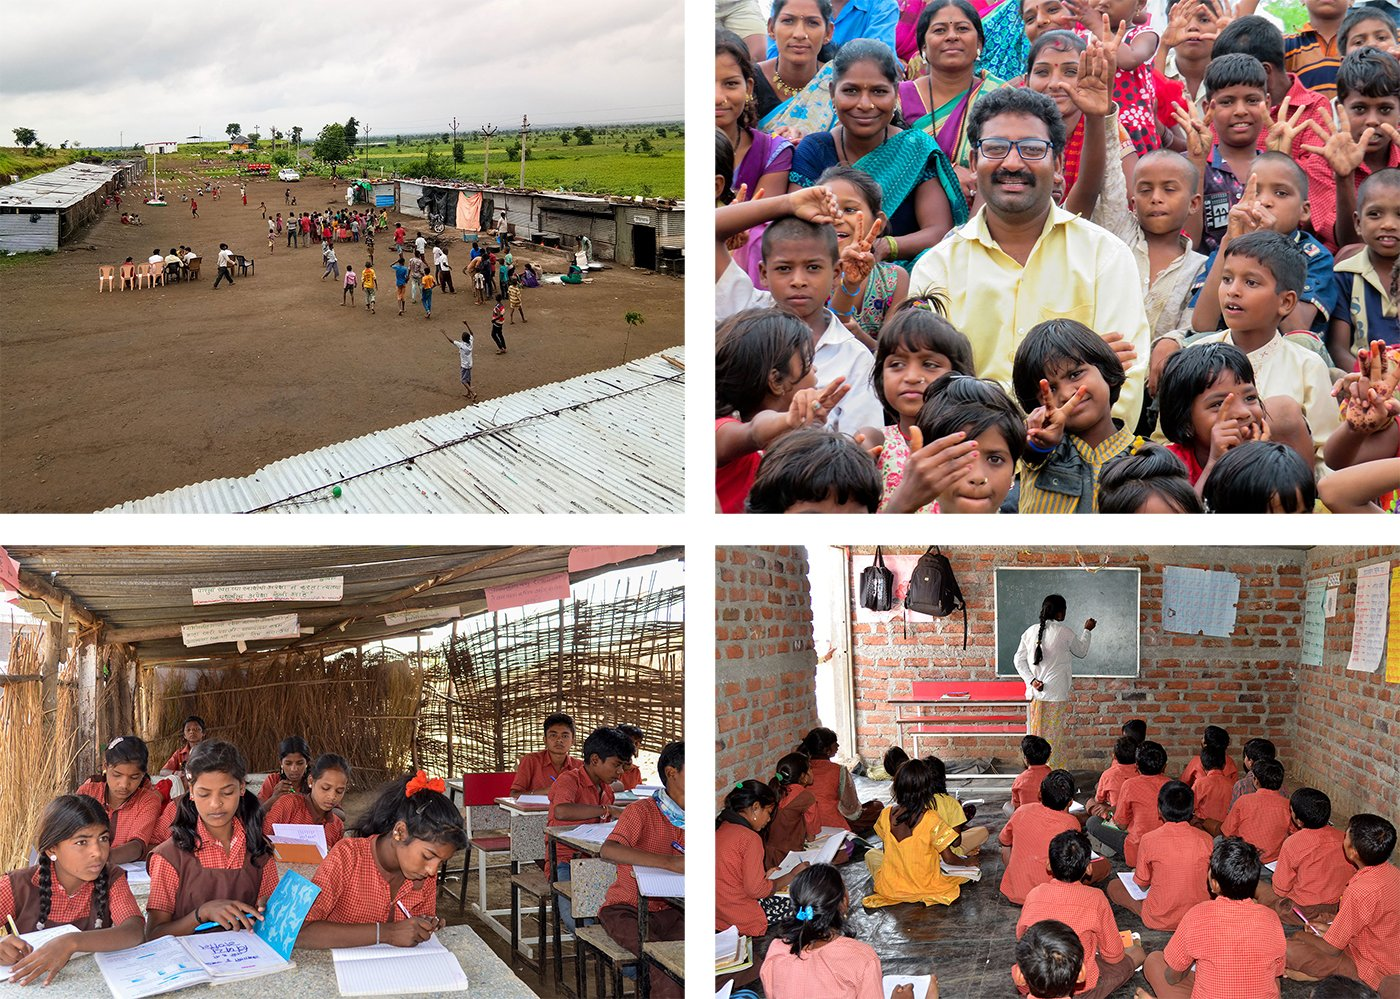 Top left - School Premises Top right - Matin Bhosale with his students Bottom left - Students inside a thatched hut classroom Bottom right - Students in semi concretised classroom